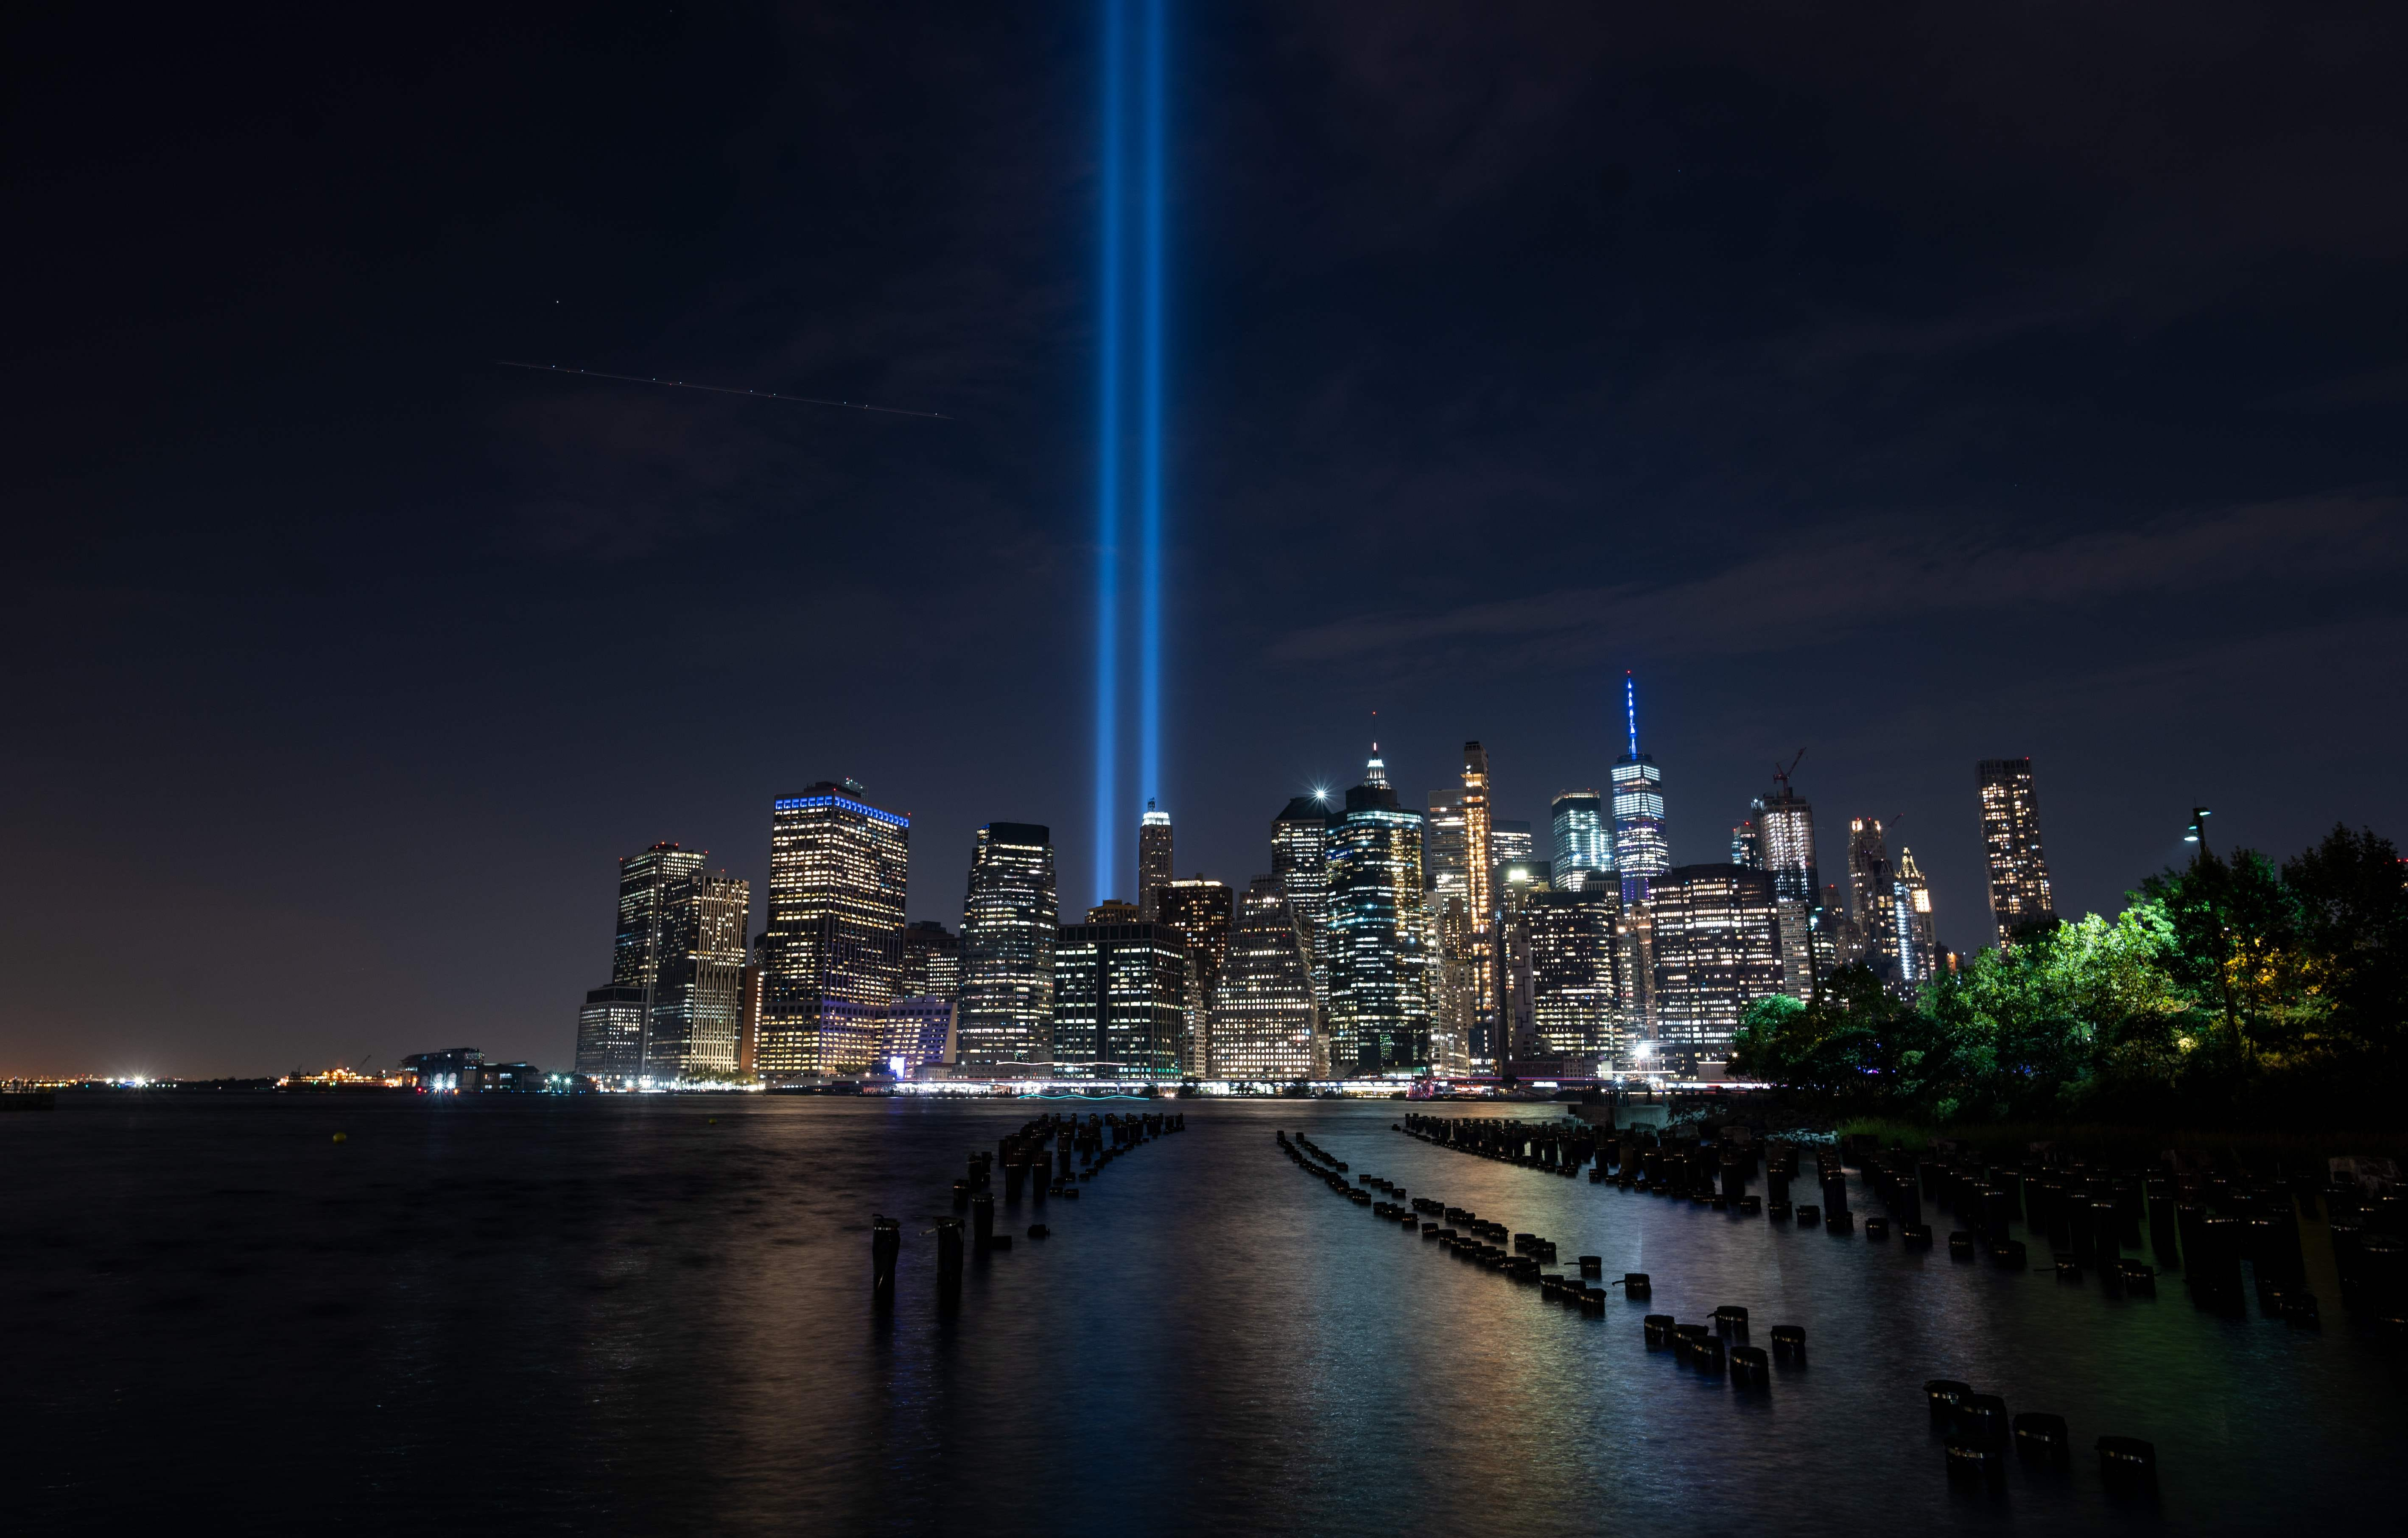 Time hasn't 'lessened our loss': US marks 18th anniversary of 9/11 terror attack with silence, tolling bells